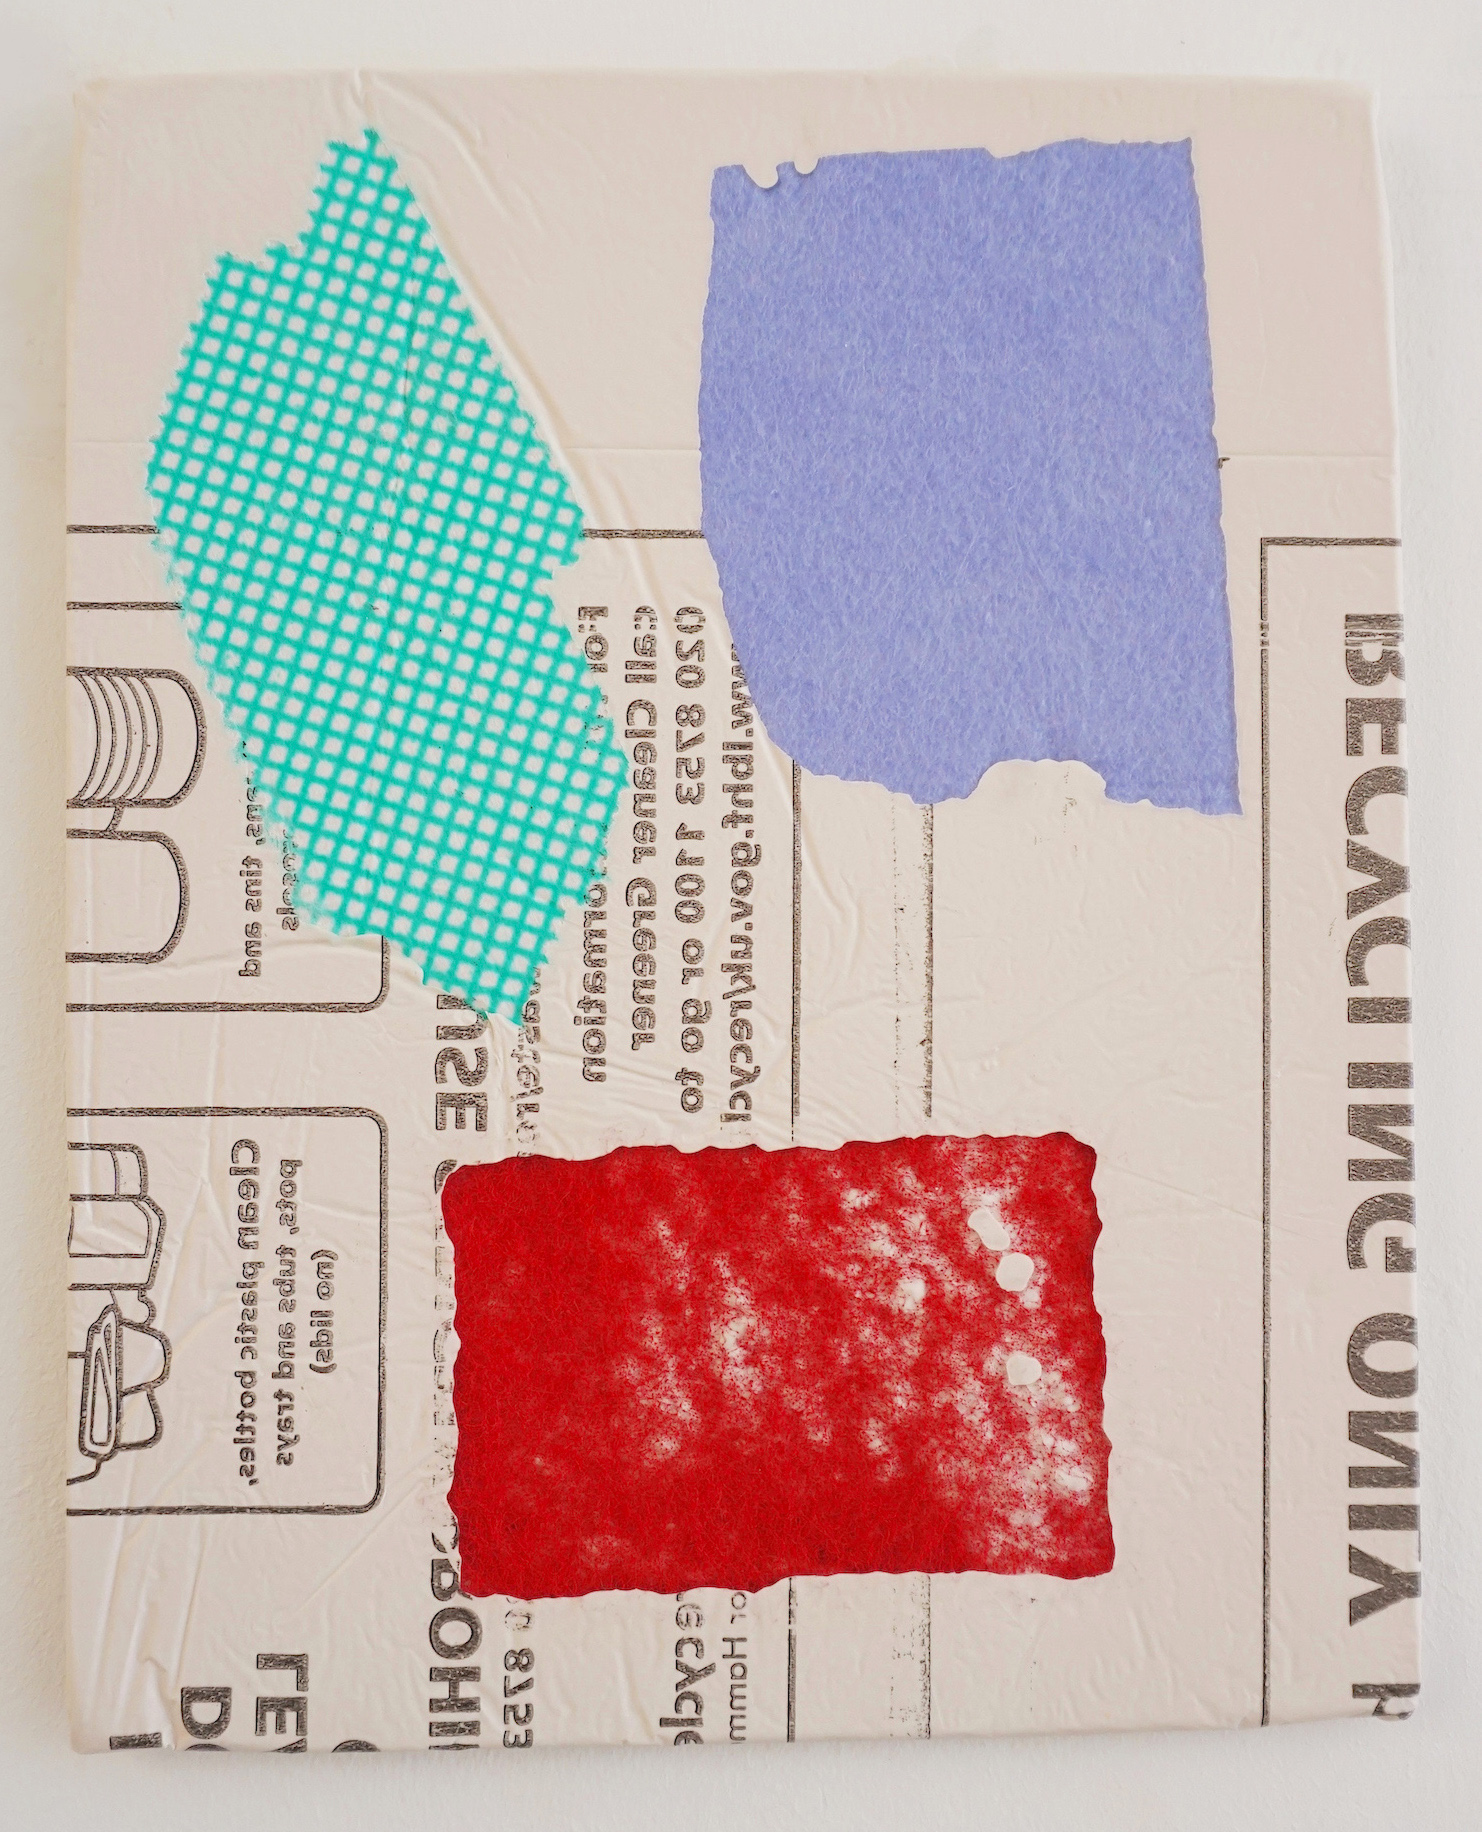 Domestic Bliss Recycled Fragment (green, red, purple) | Composite, Mixed Media | 35 x 28 cm